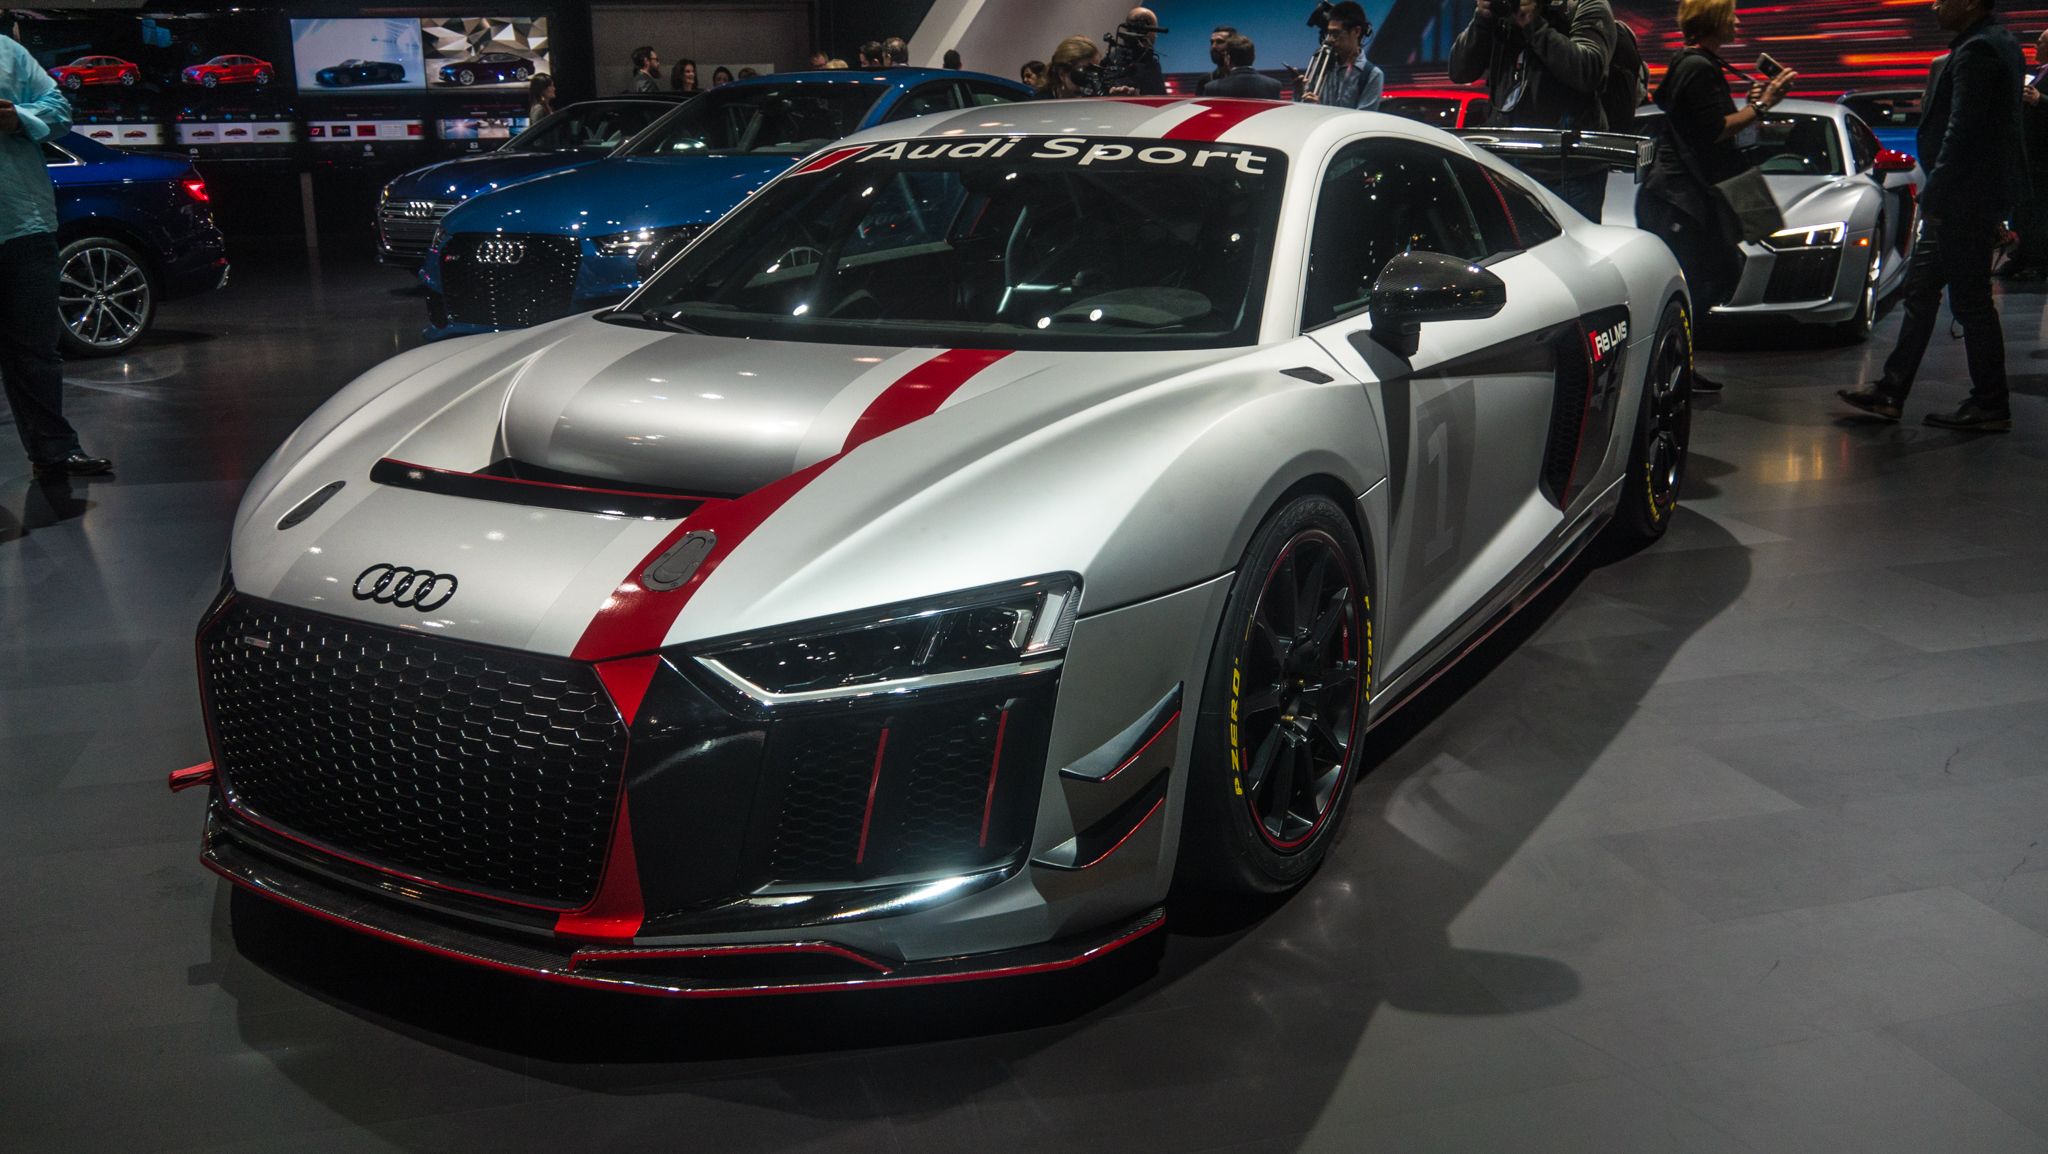 audi sport 39 s new gt4 race car was star of its ny international auto show motorarticles. Black Bedroom Furniture Sets. Home Design Ideas